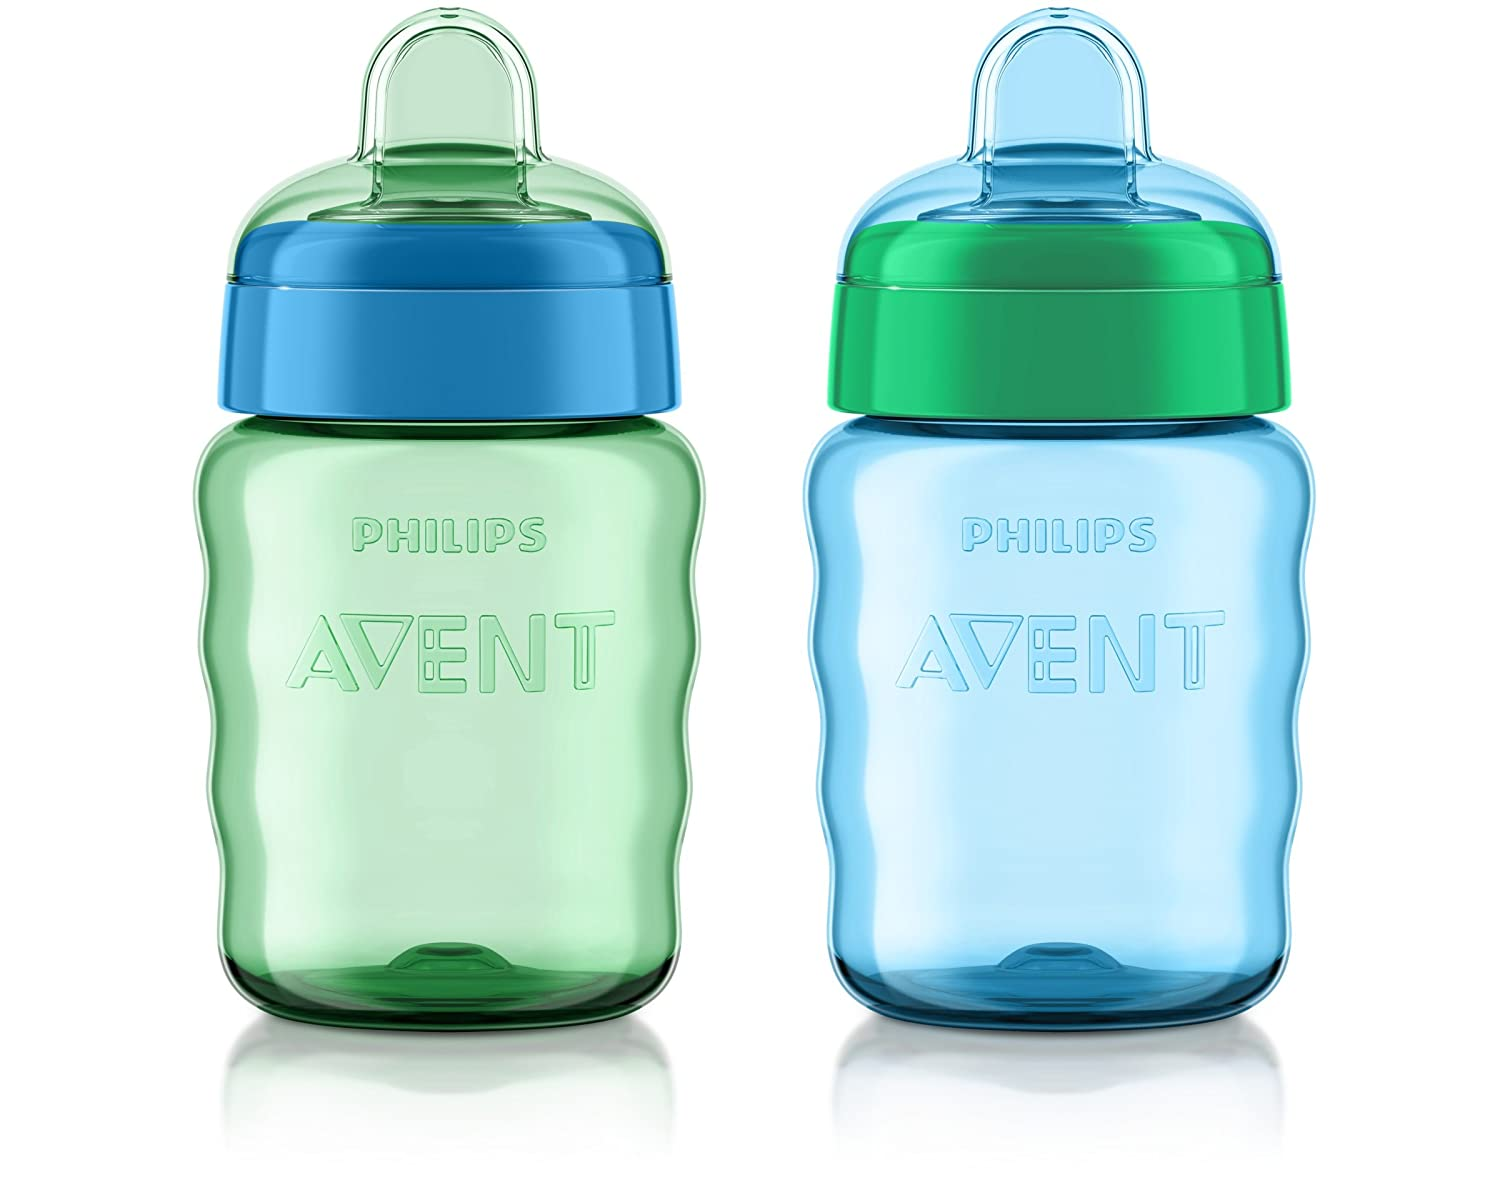 Philips Avent Max 69% OFF San Antonio Mall My Easy Sippy Cup 9 Ounce Blue 2 Green Stage C